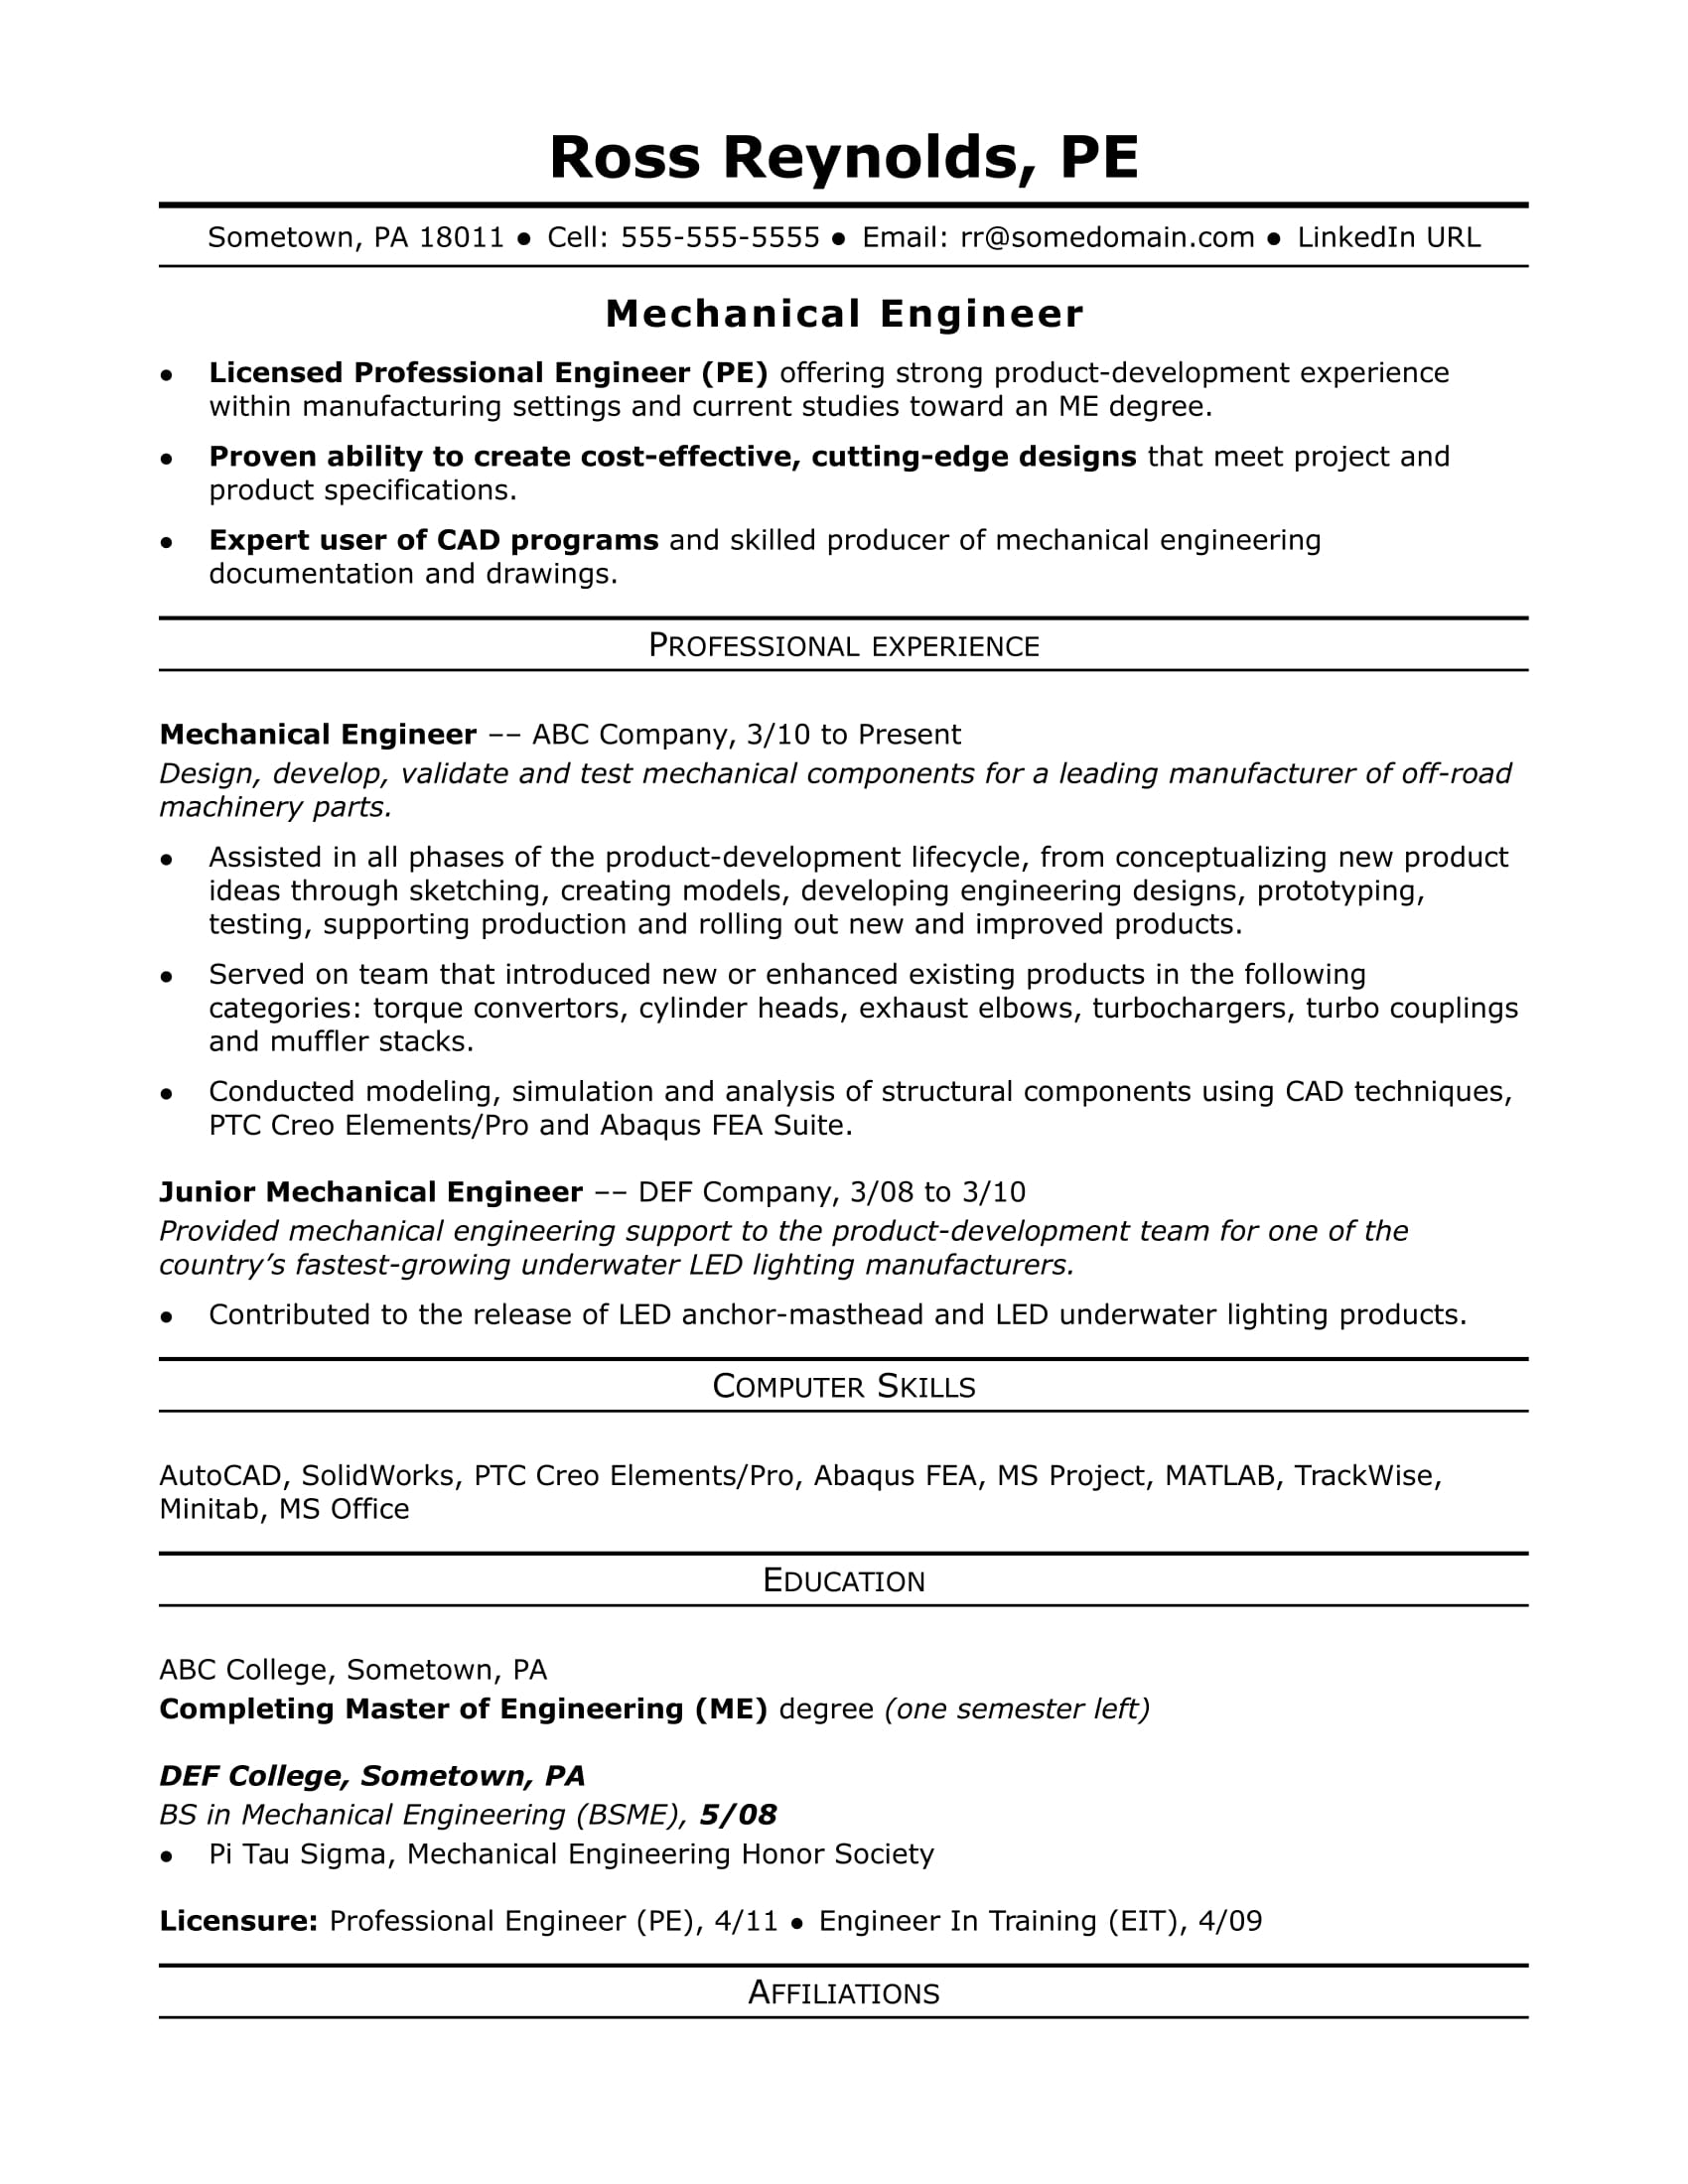 Resume Format For Design Engineer In Mechanical Sample Resume For A Midlevel Mechanical Engineer Monster